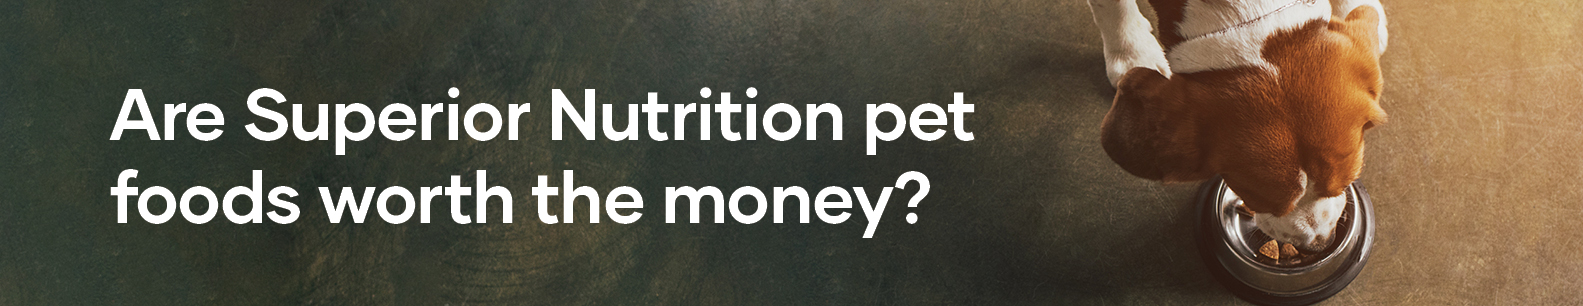 Are Superior Nutrition Pet Foods Worth the Money?